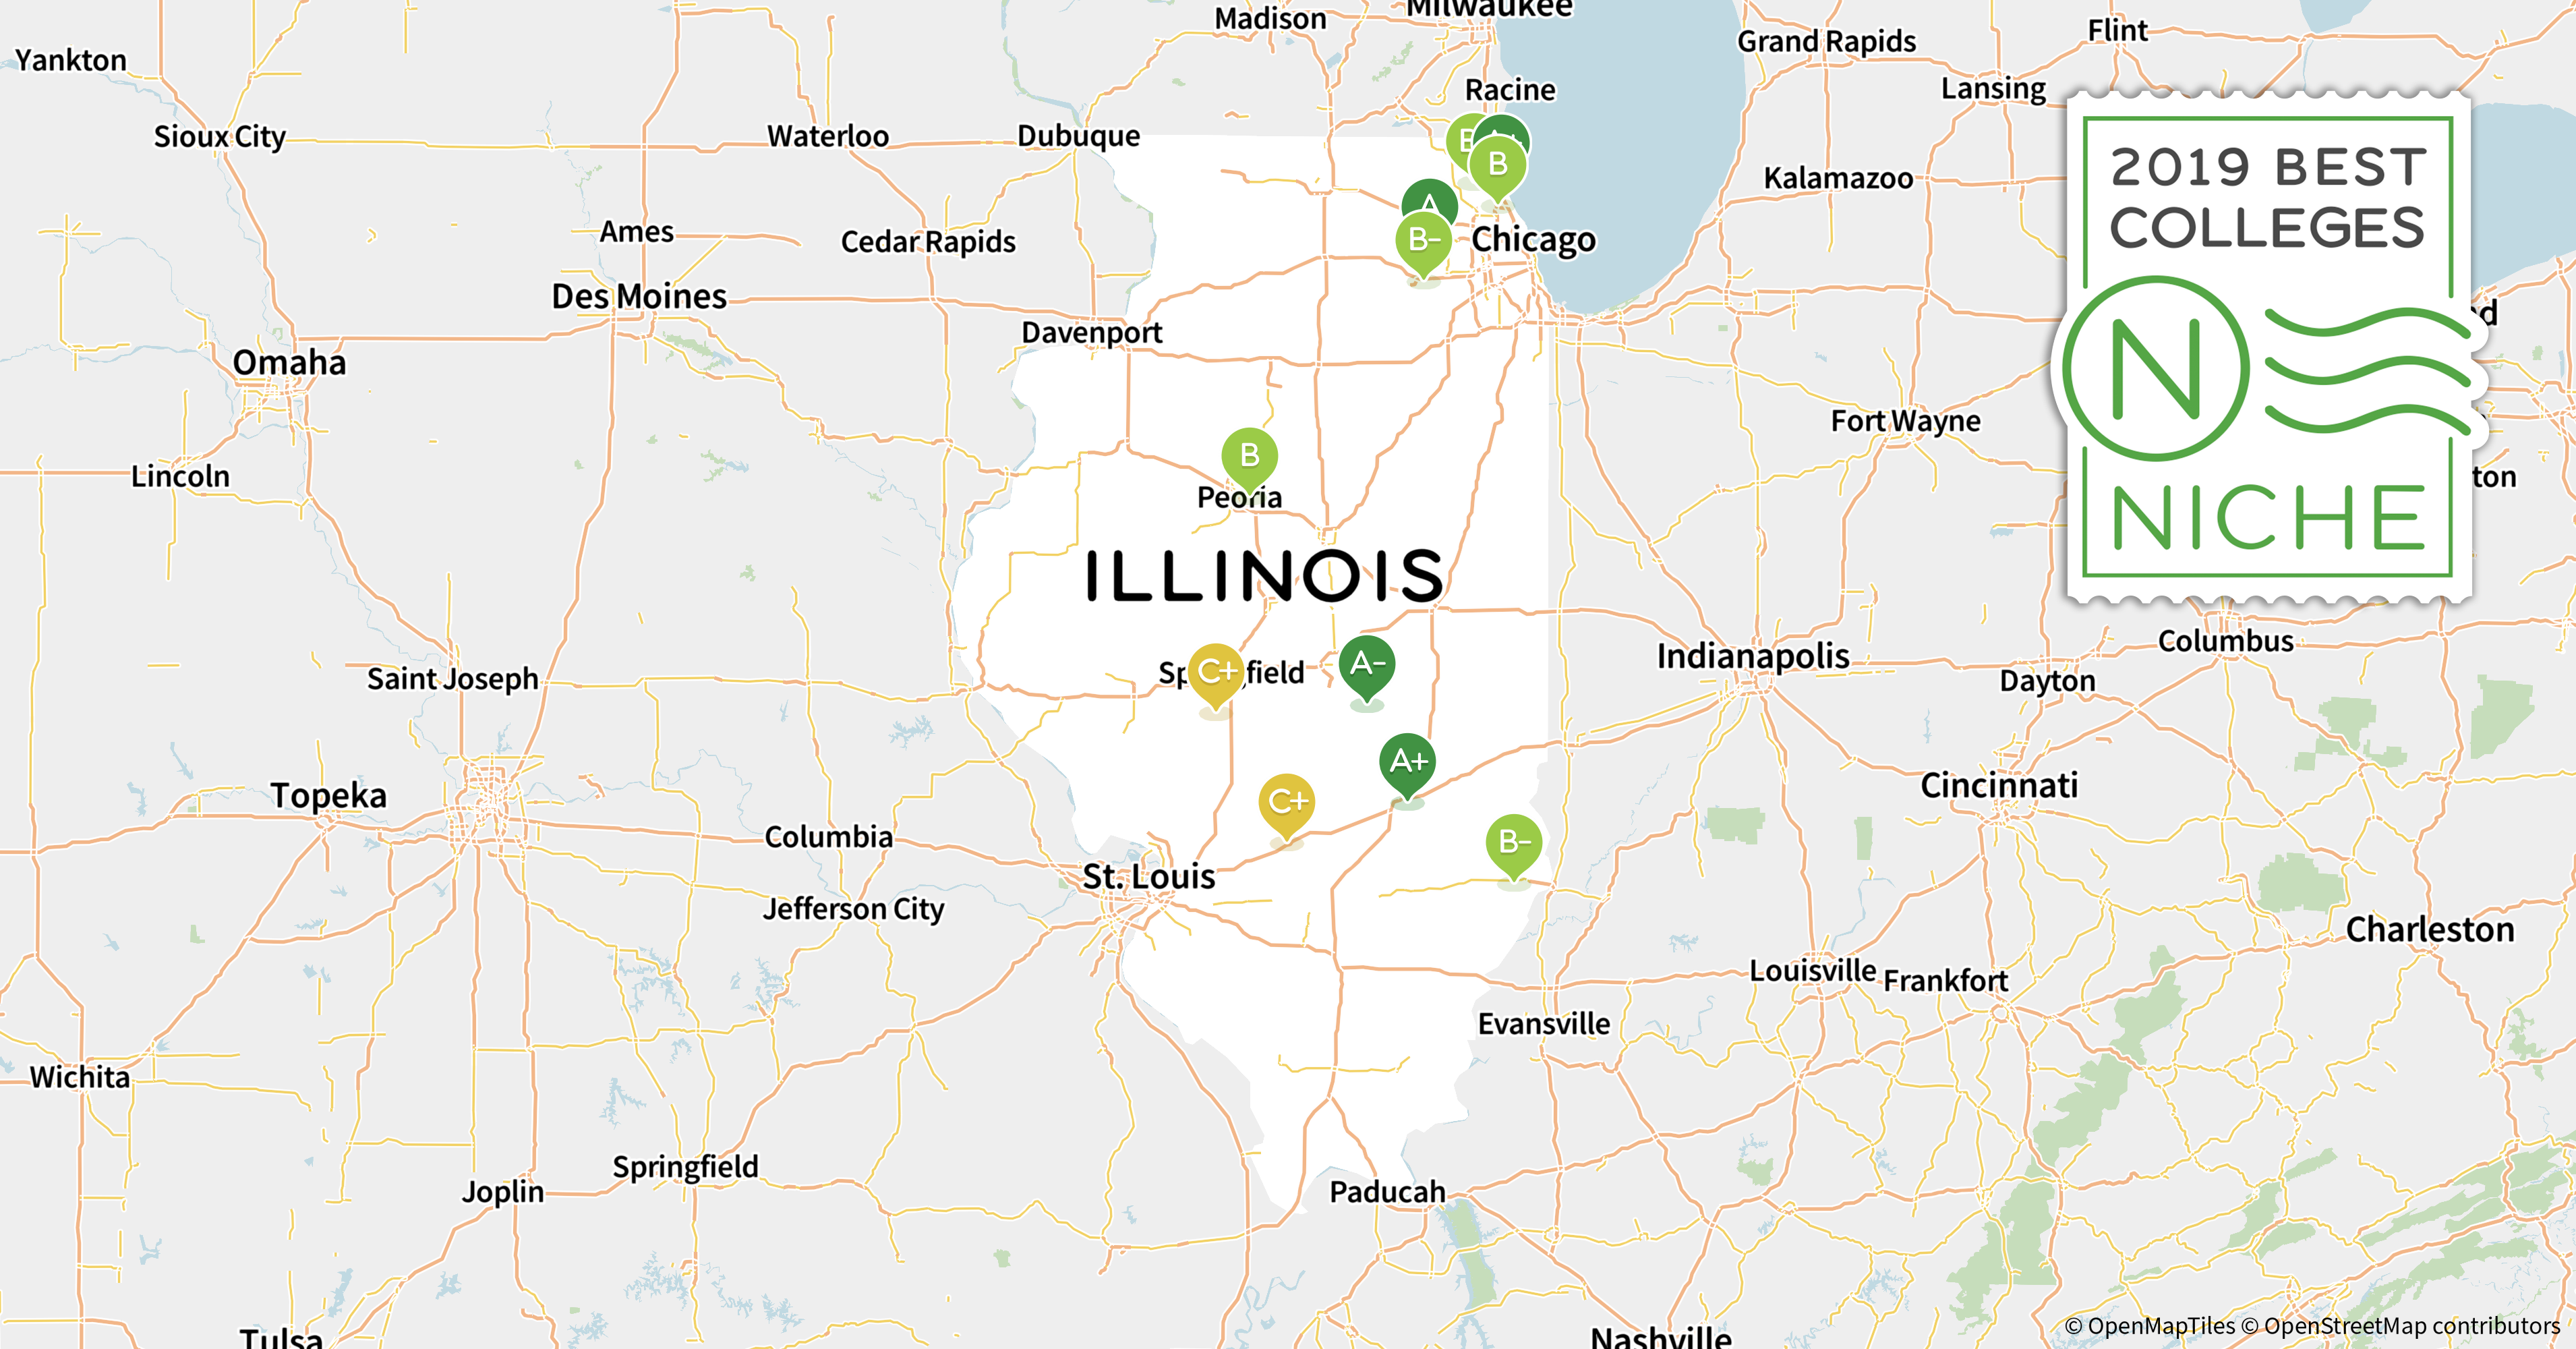 2019 Top Public Universities in Illinois   Niche